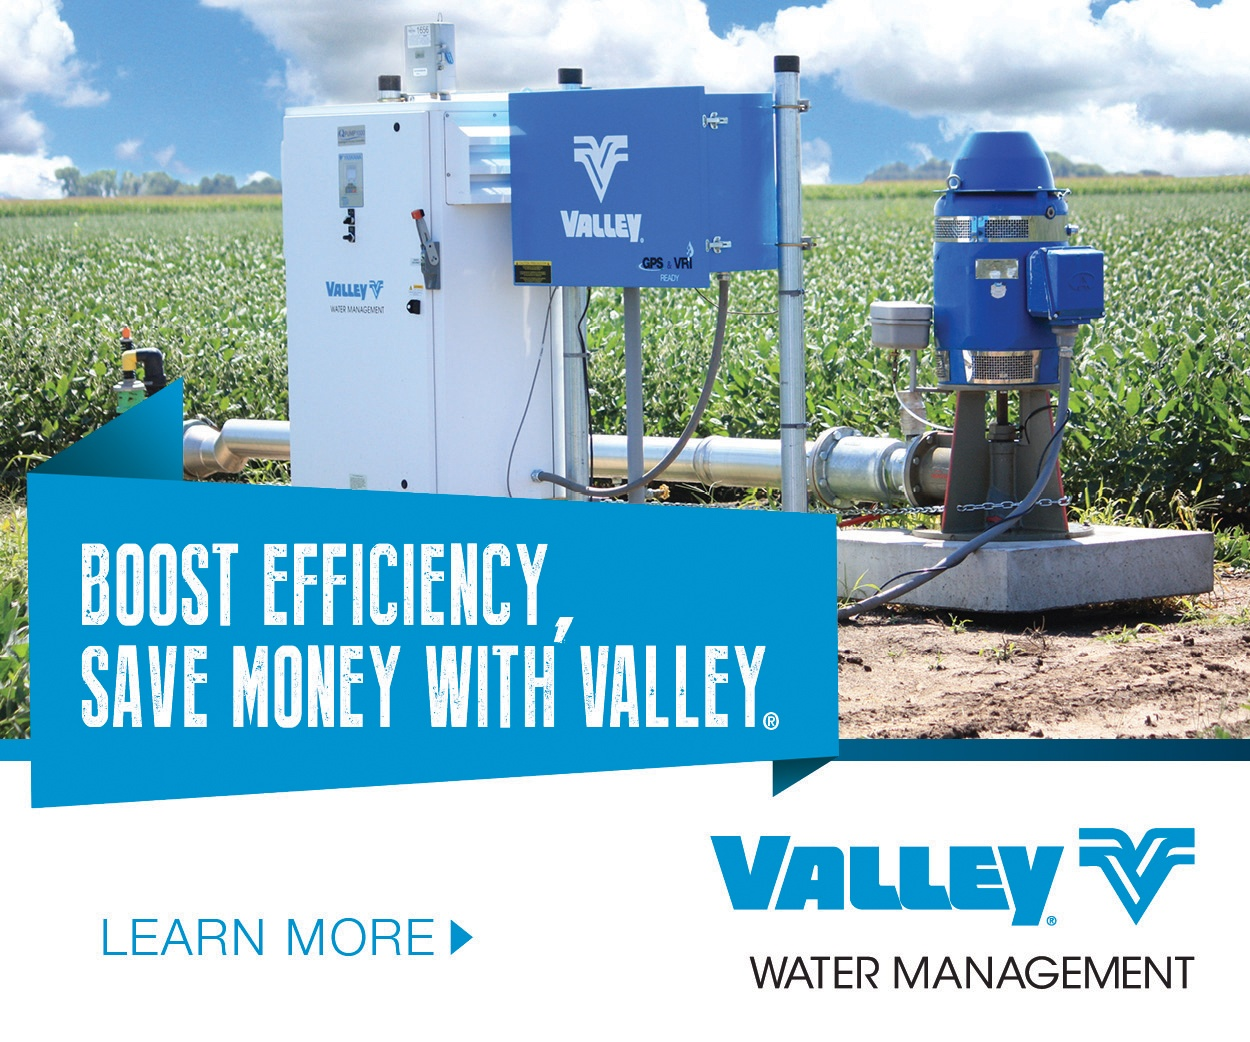 Valley Water Management - pumping solutions